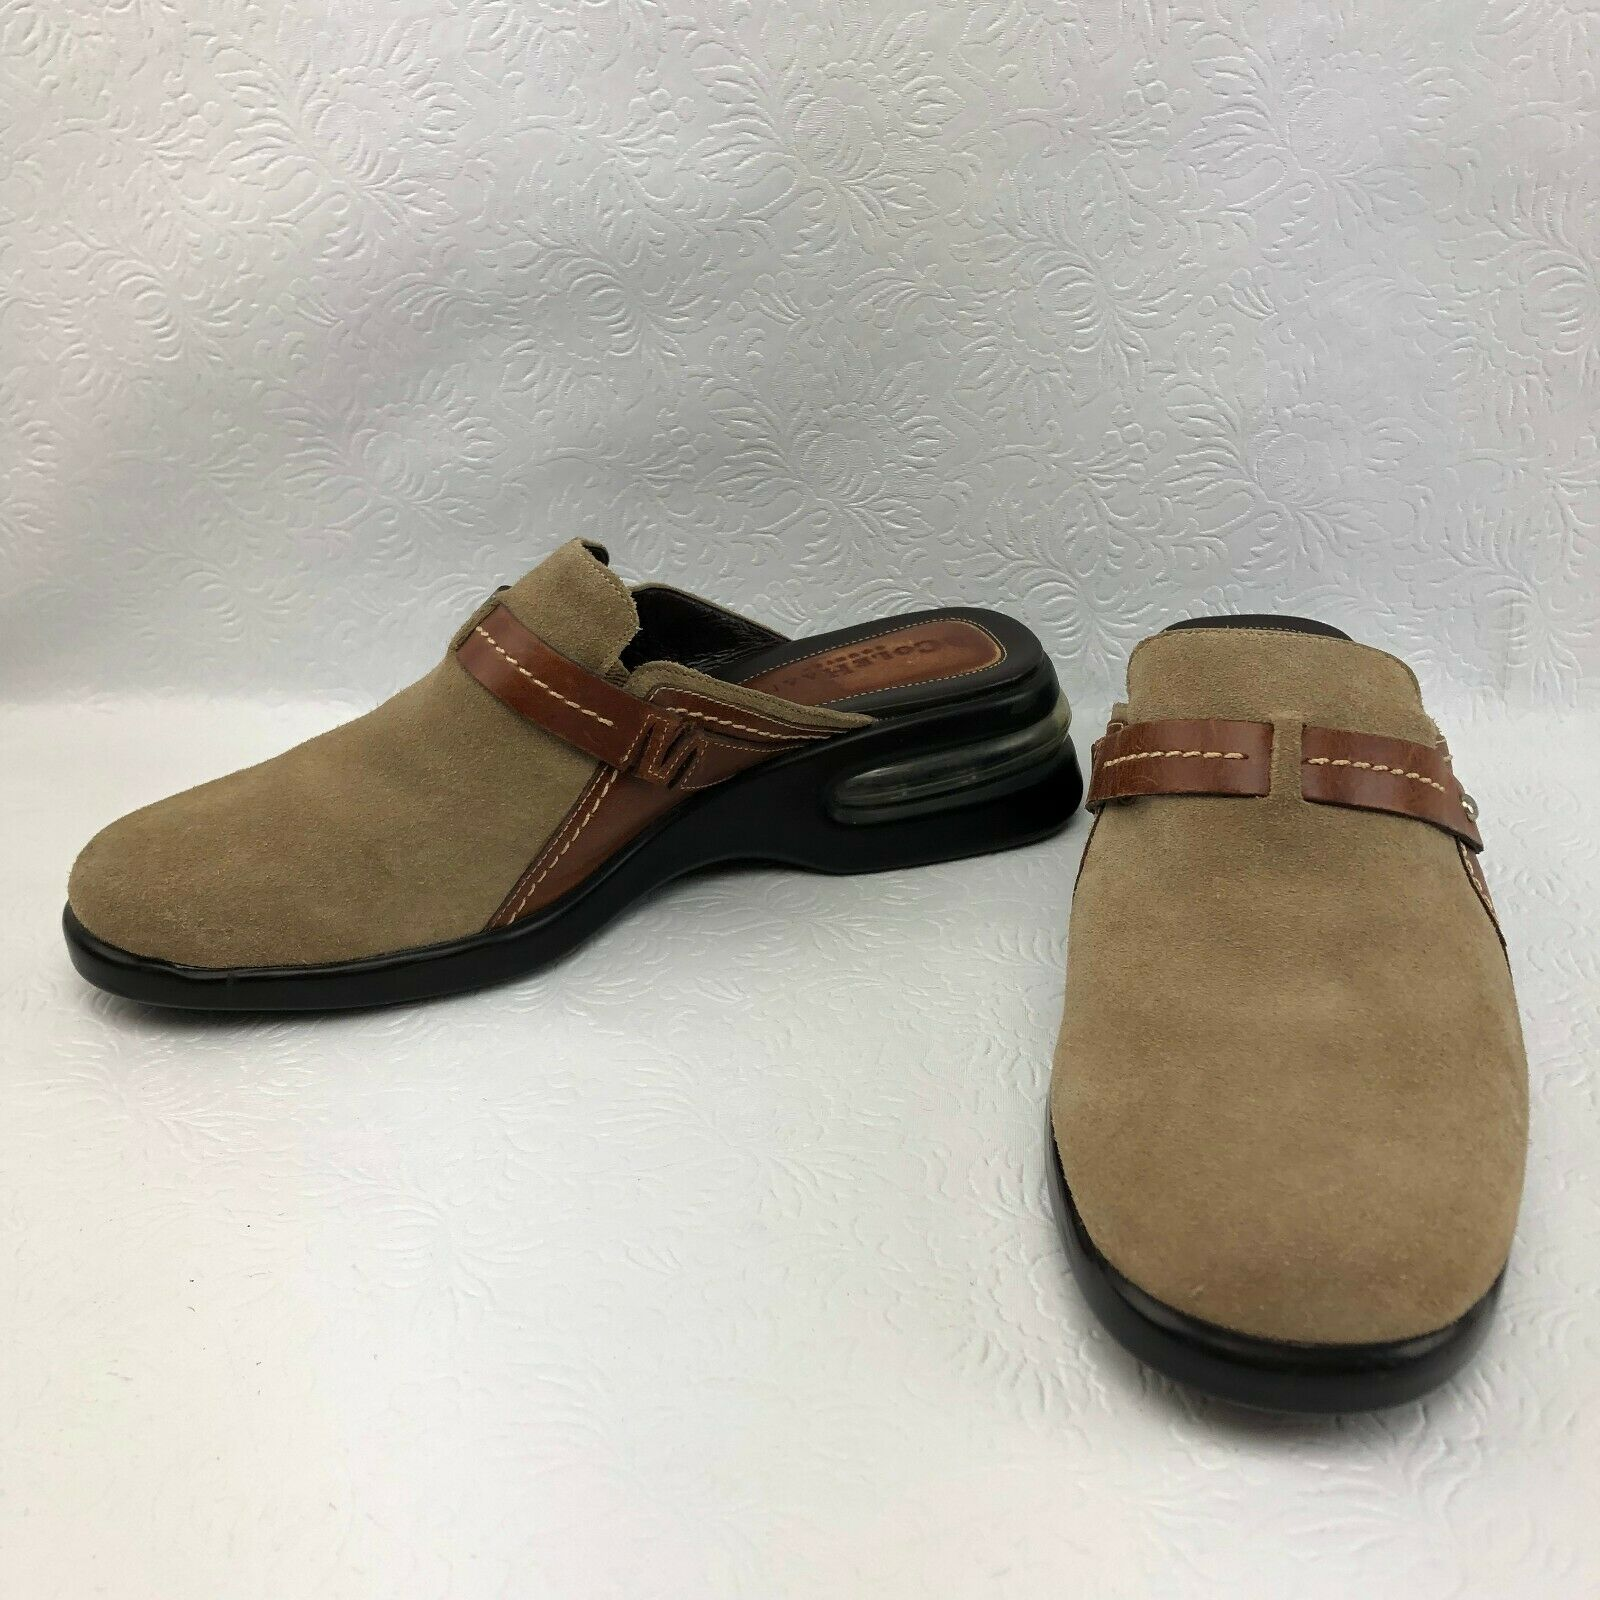 COLE HAAN COUNTRY AIR WOMENS 8 B TAN SUEDE LEATHER WEDGE CLOGS SLIDES MULES